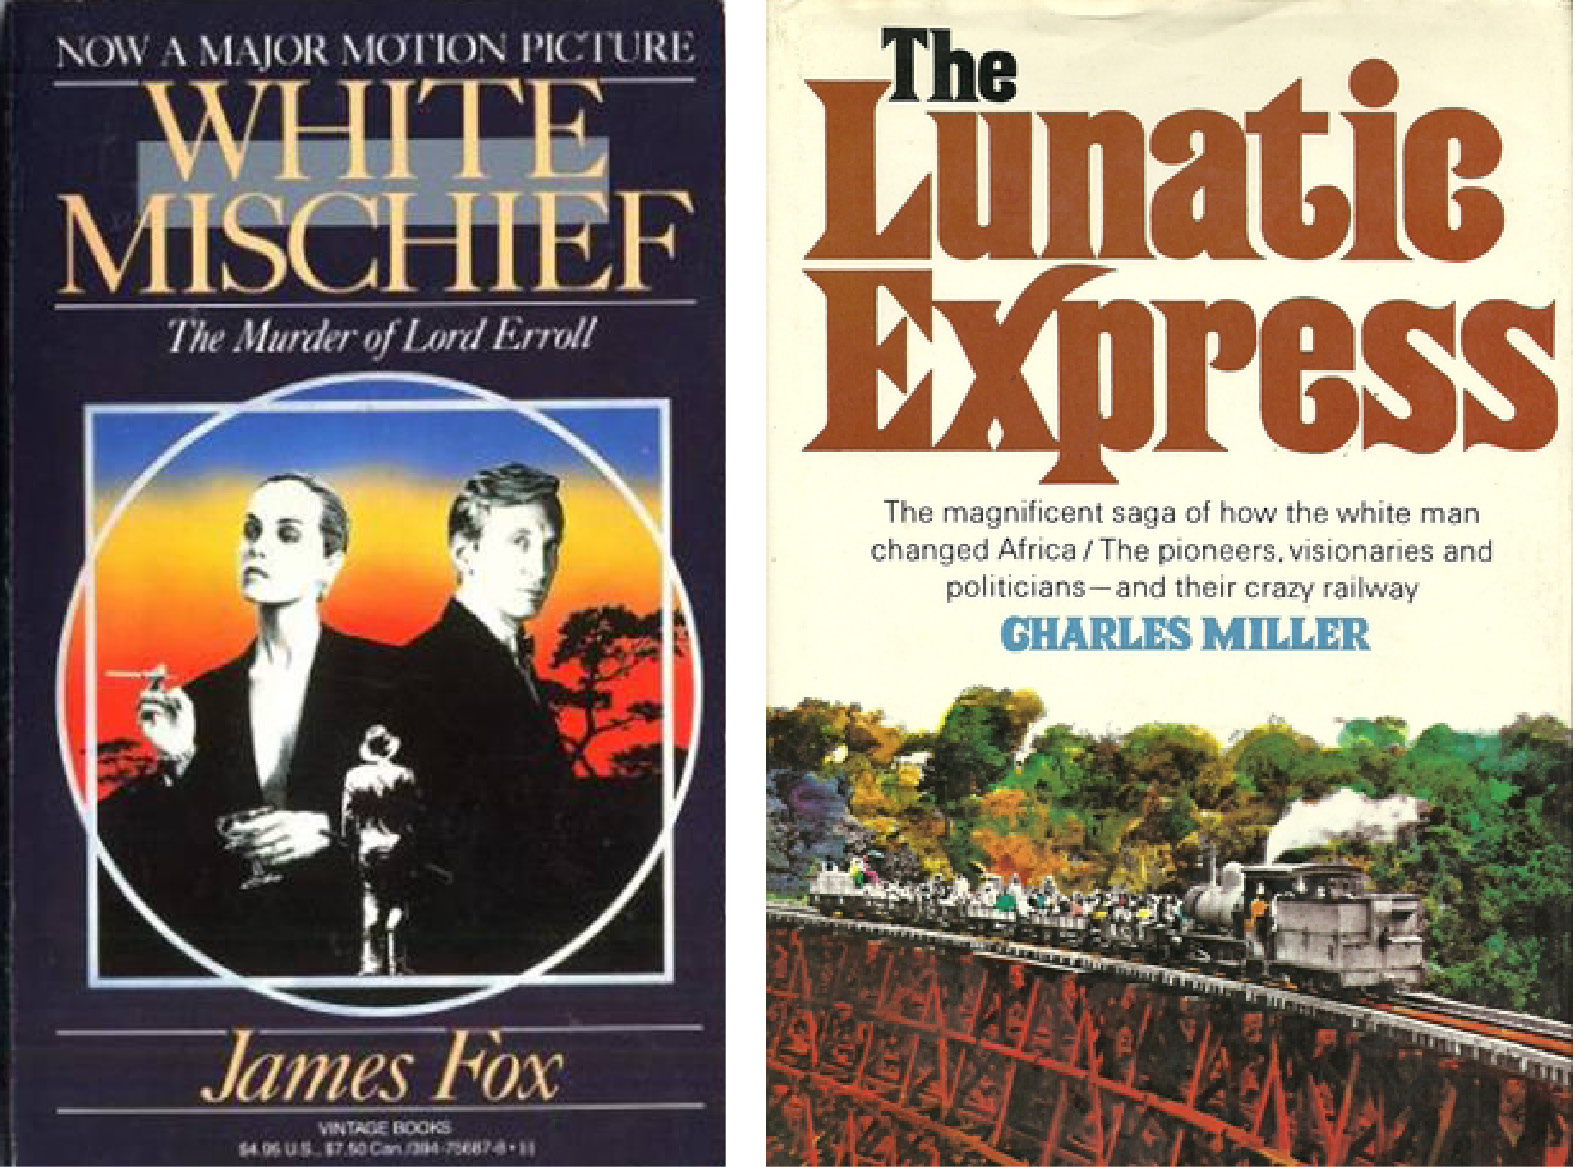 White Mischief and The Lunatic Express